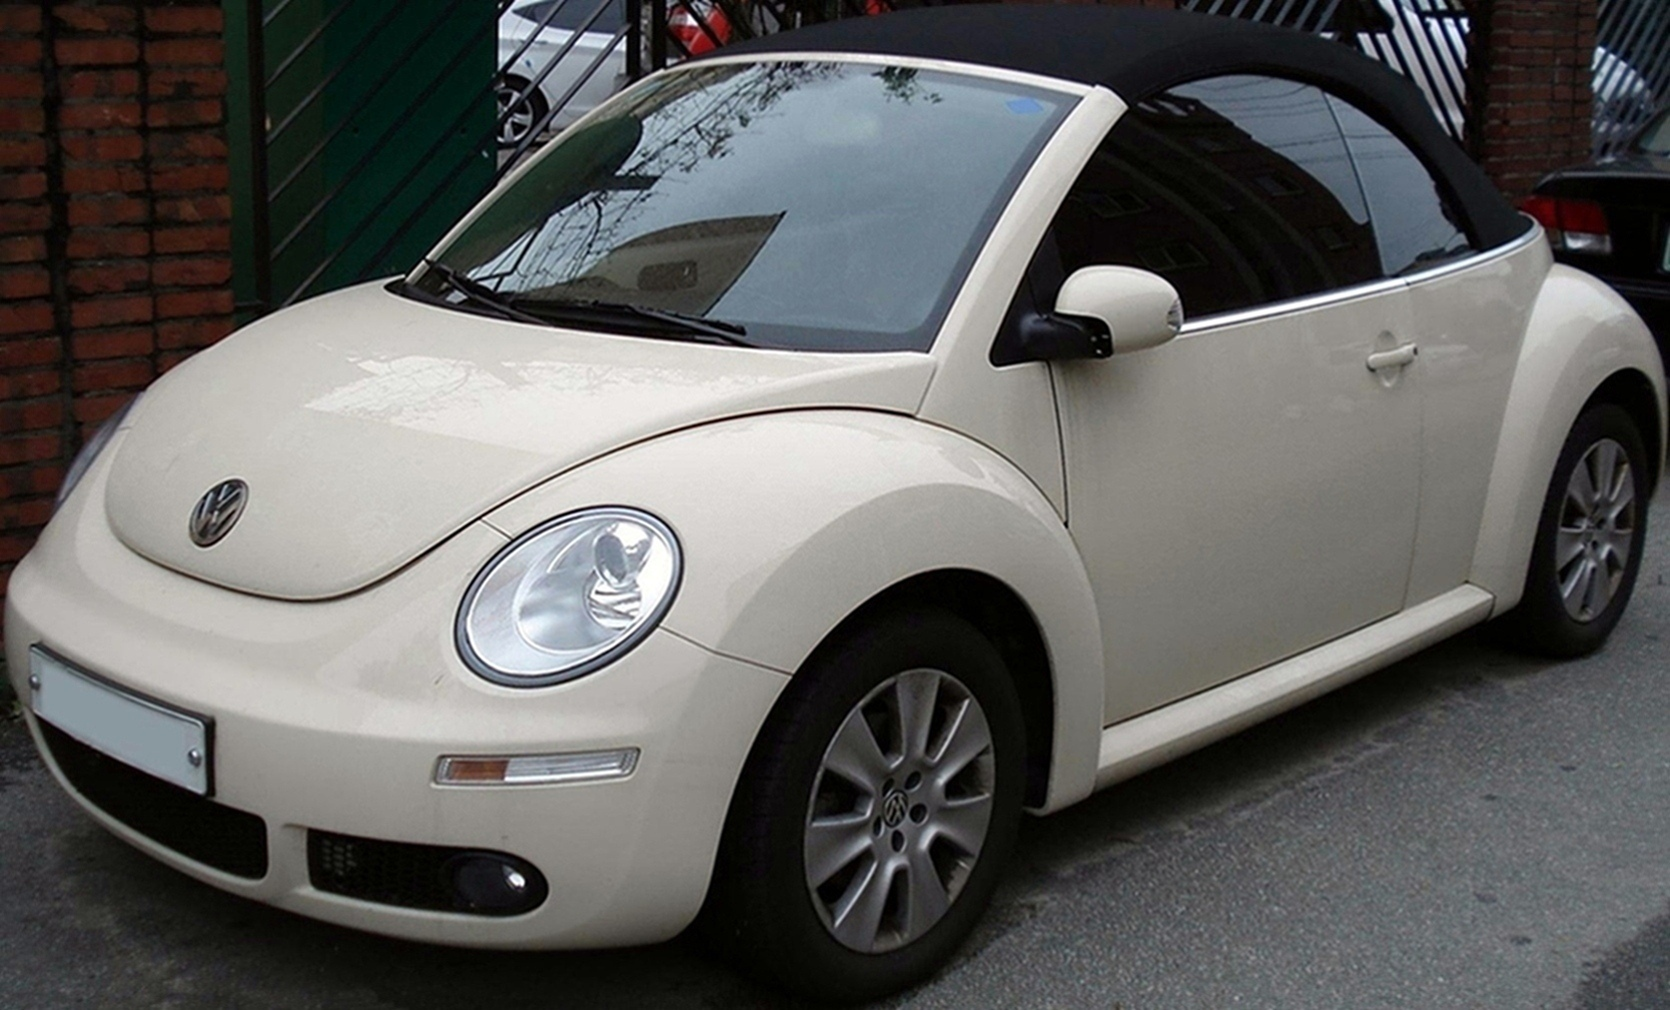 file 20100922 volkswagen new beetle cabriolet wikimedia commons. Black Bedroom Furniture Sets. Home Design Ideas